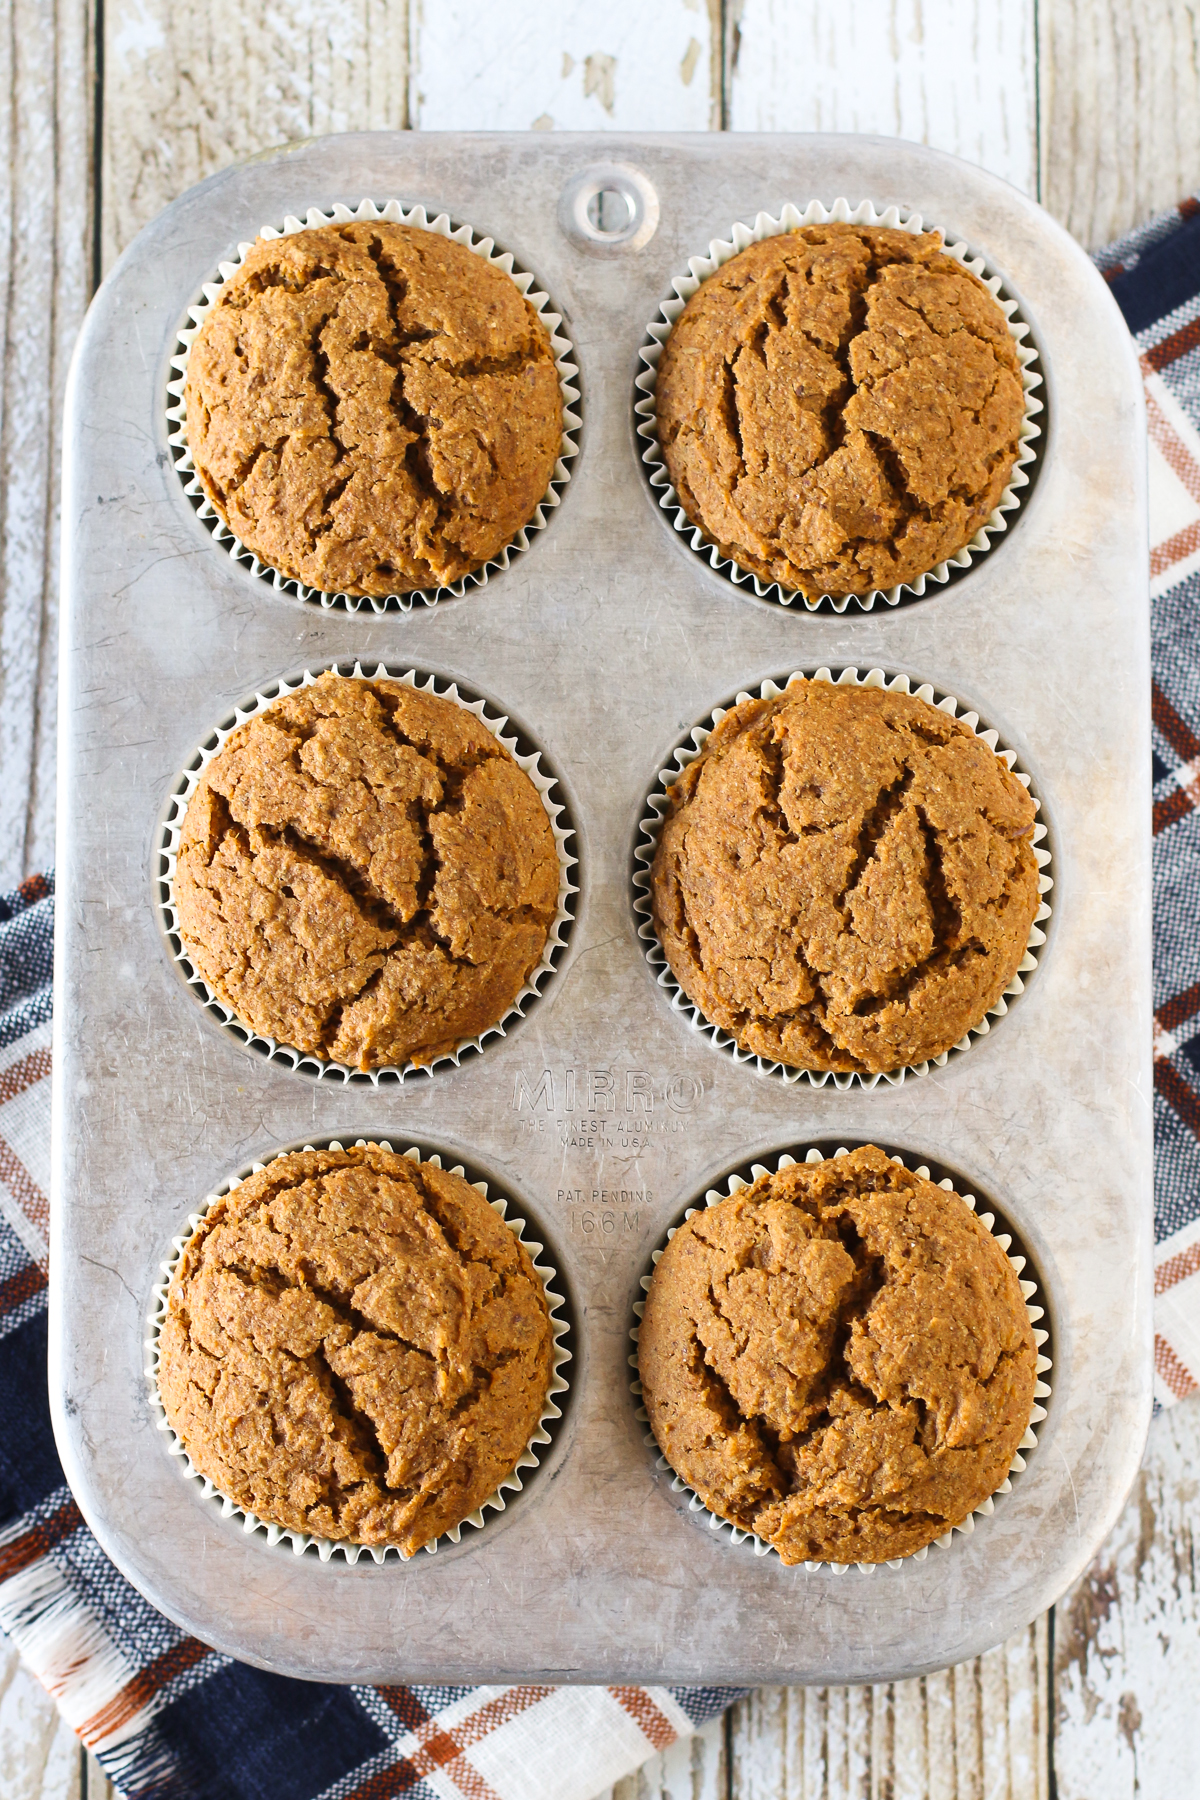 Gluten Free Vegan Pumpkin Spice Muffins. These naturally sweetened pumpkin muffins have all the warm spices we love. They are fall-tastic!